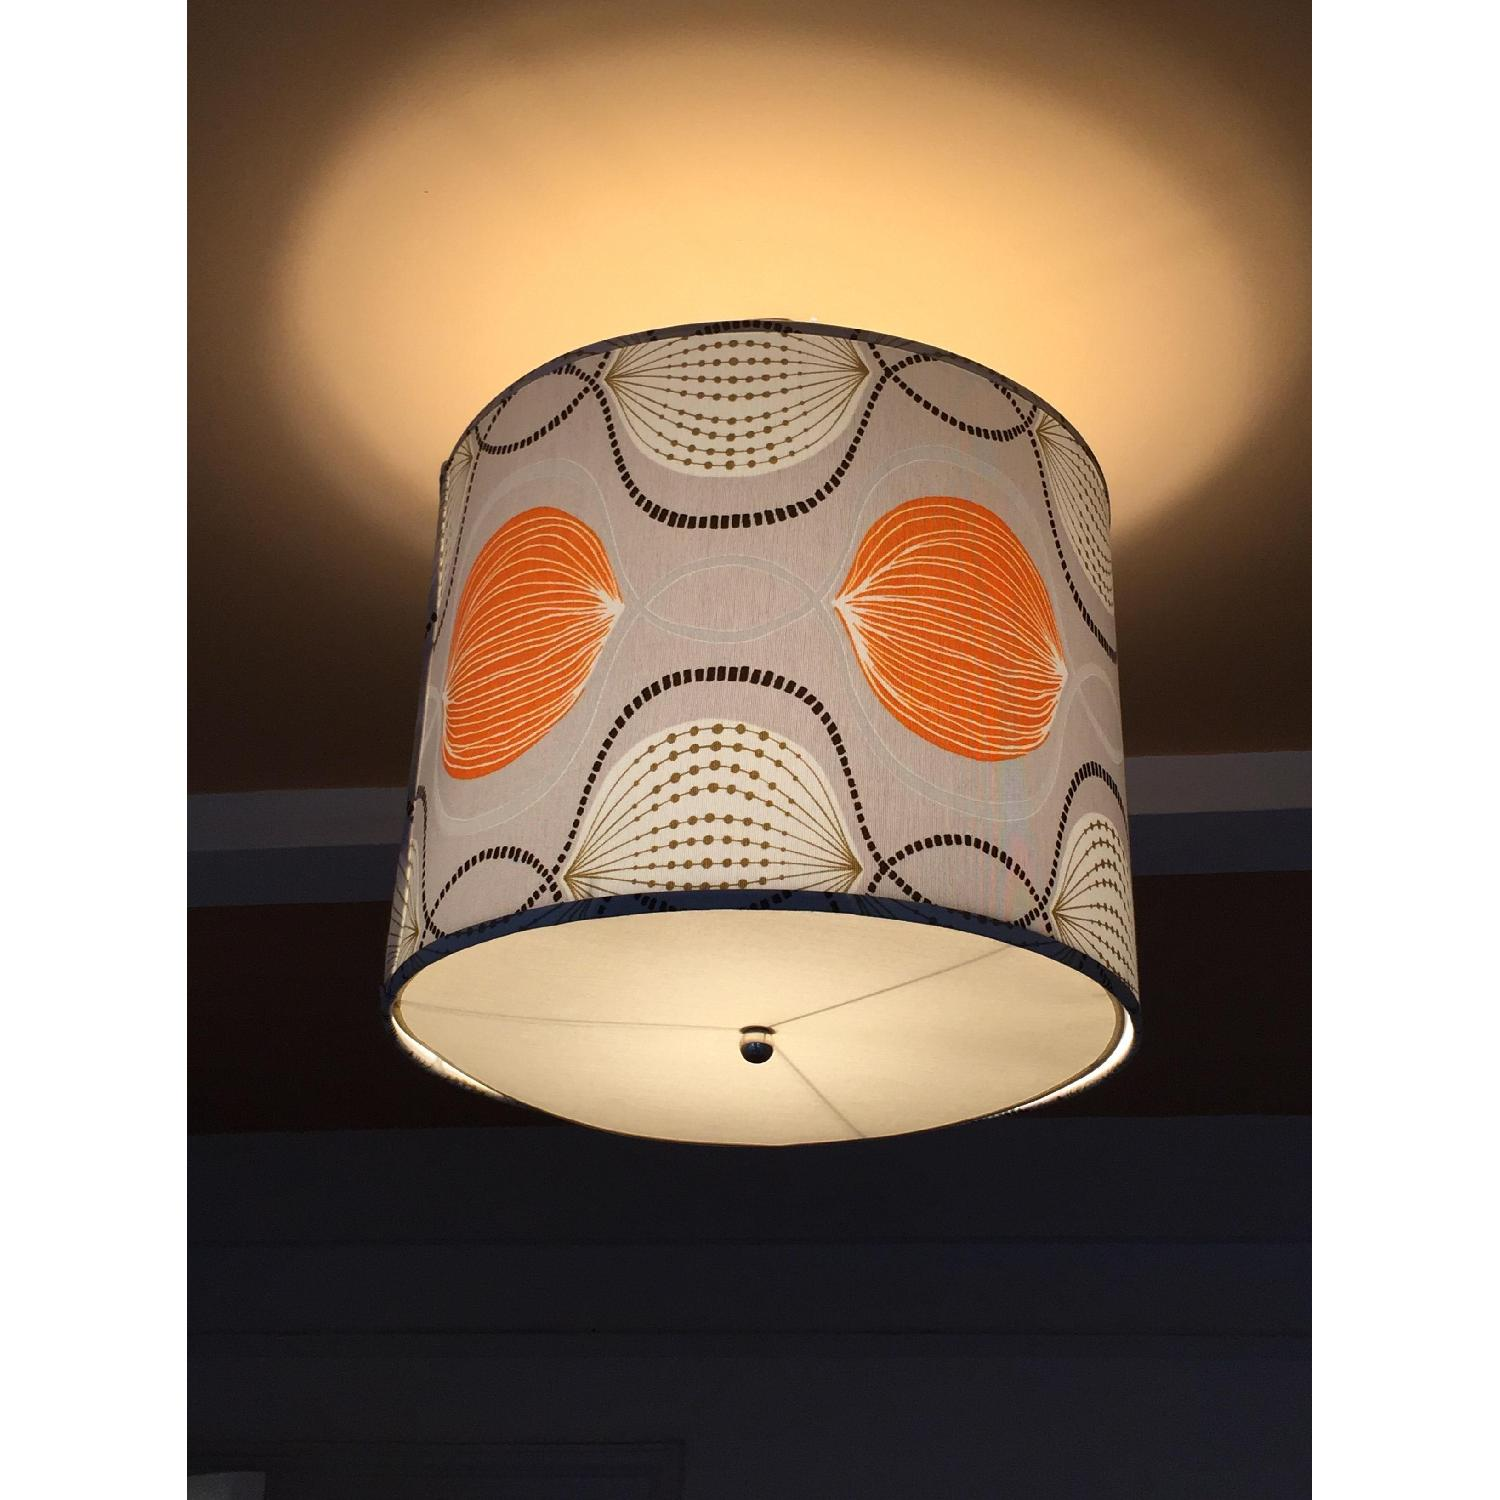 Custom Drum Ceiling Light - Gray & Orange - image-2